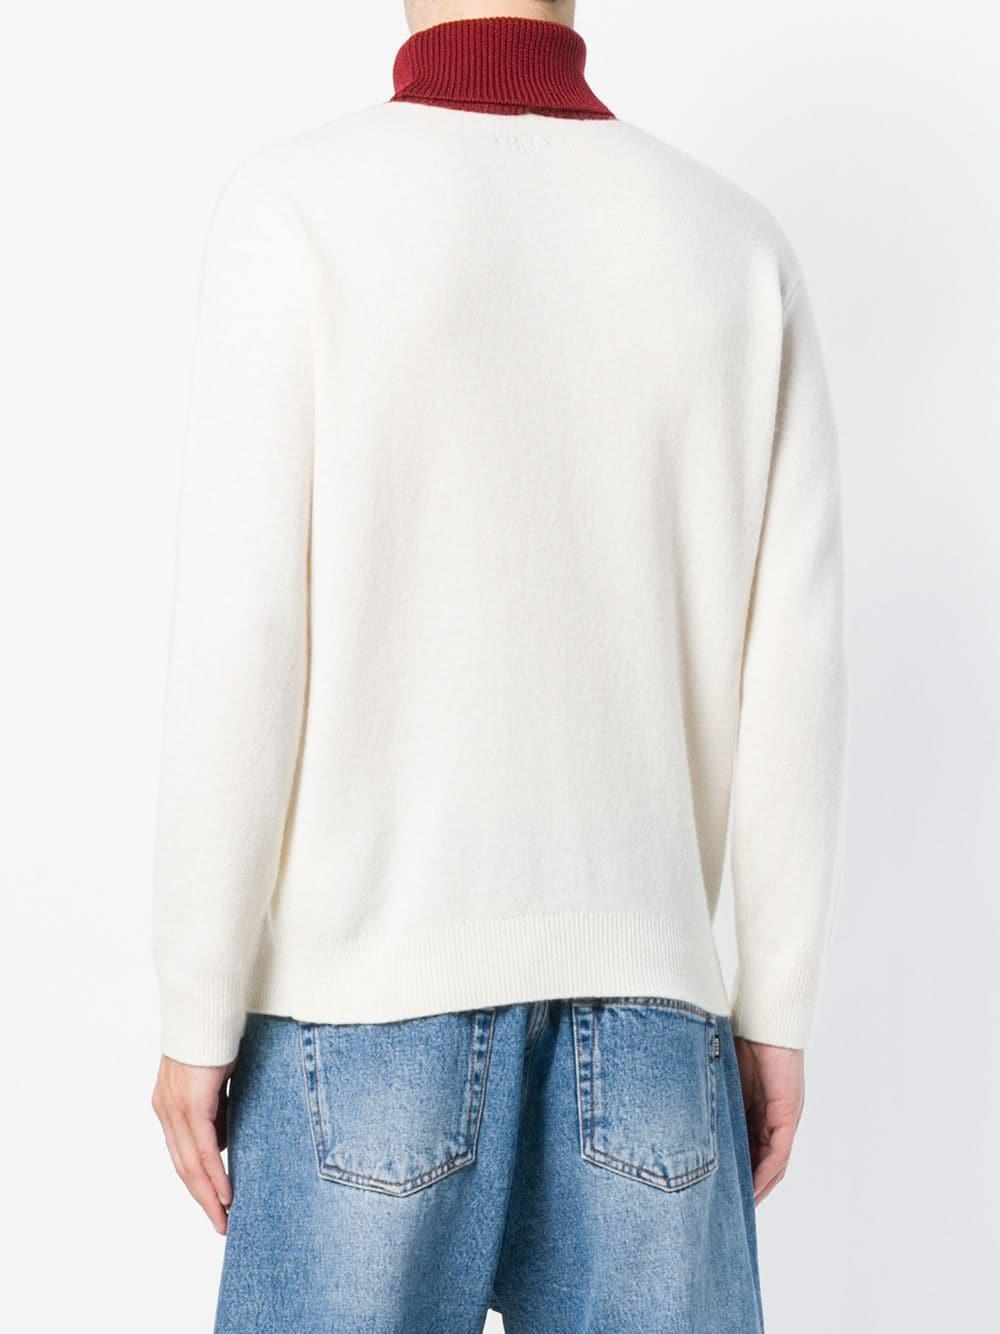 KENZO Wool High Neck Knit Sweater in White for Men